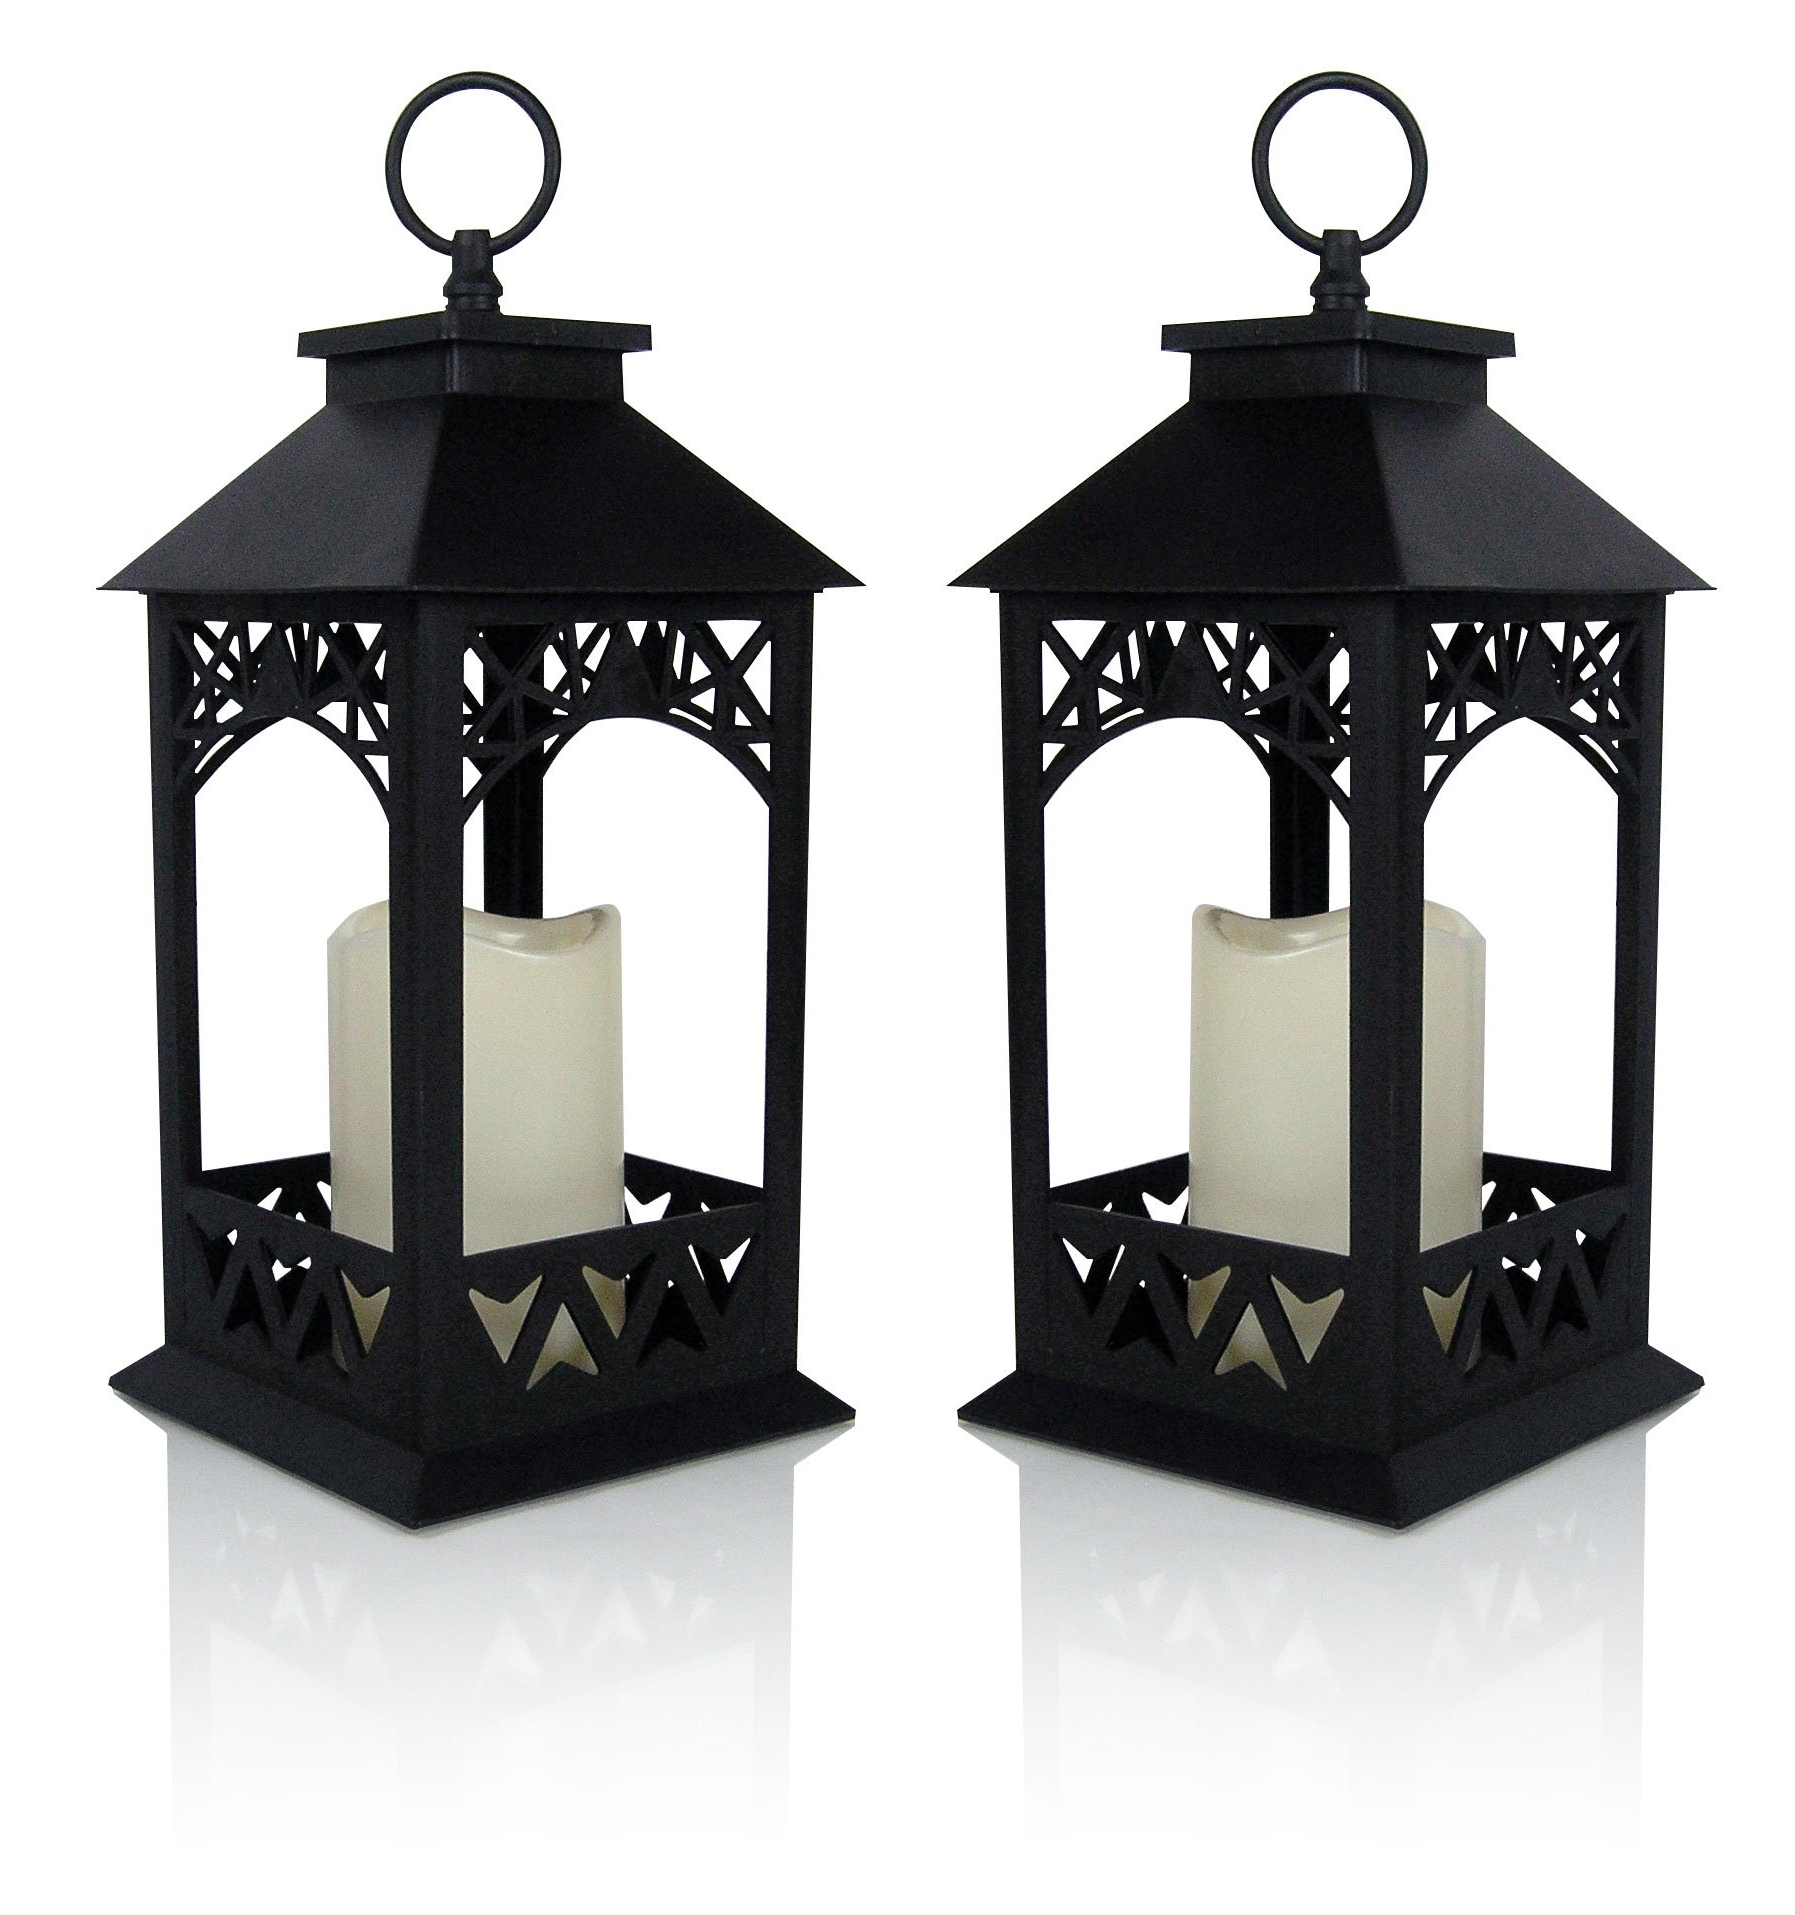 Cheap Outdoor Lanterns Candle, Find Outdoor Lanterns Candle Deals On Regarding Well Liked Outdoor Lanterns For Pillars (Gallery 10 of 20)